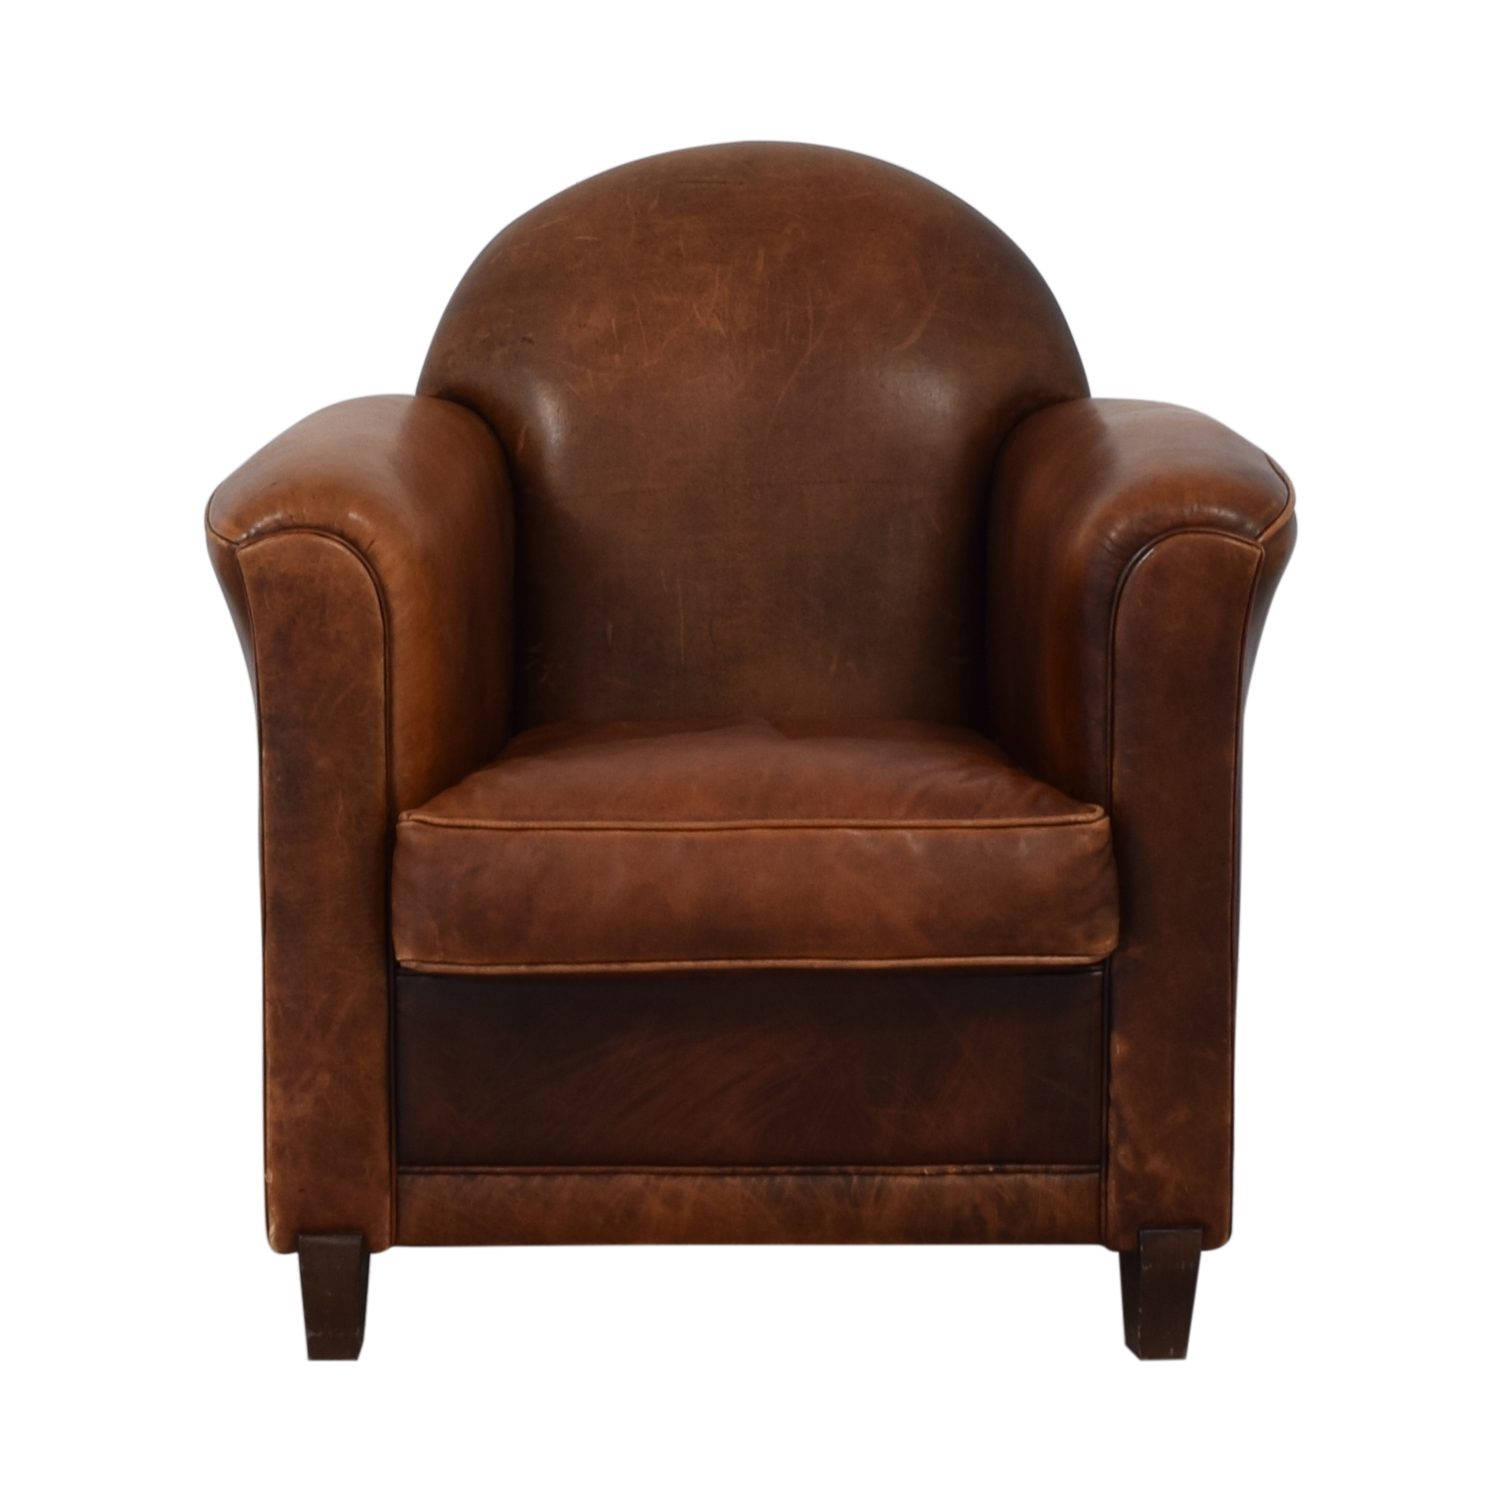 French Leather Club Chair Accent Chairs